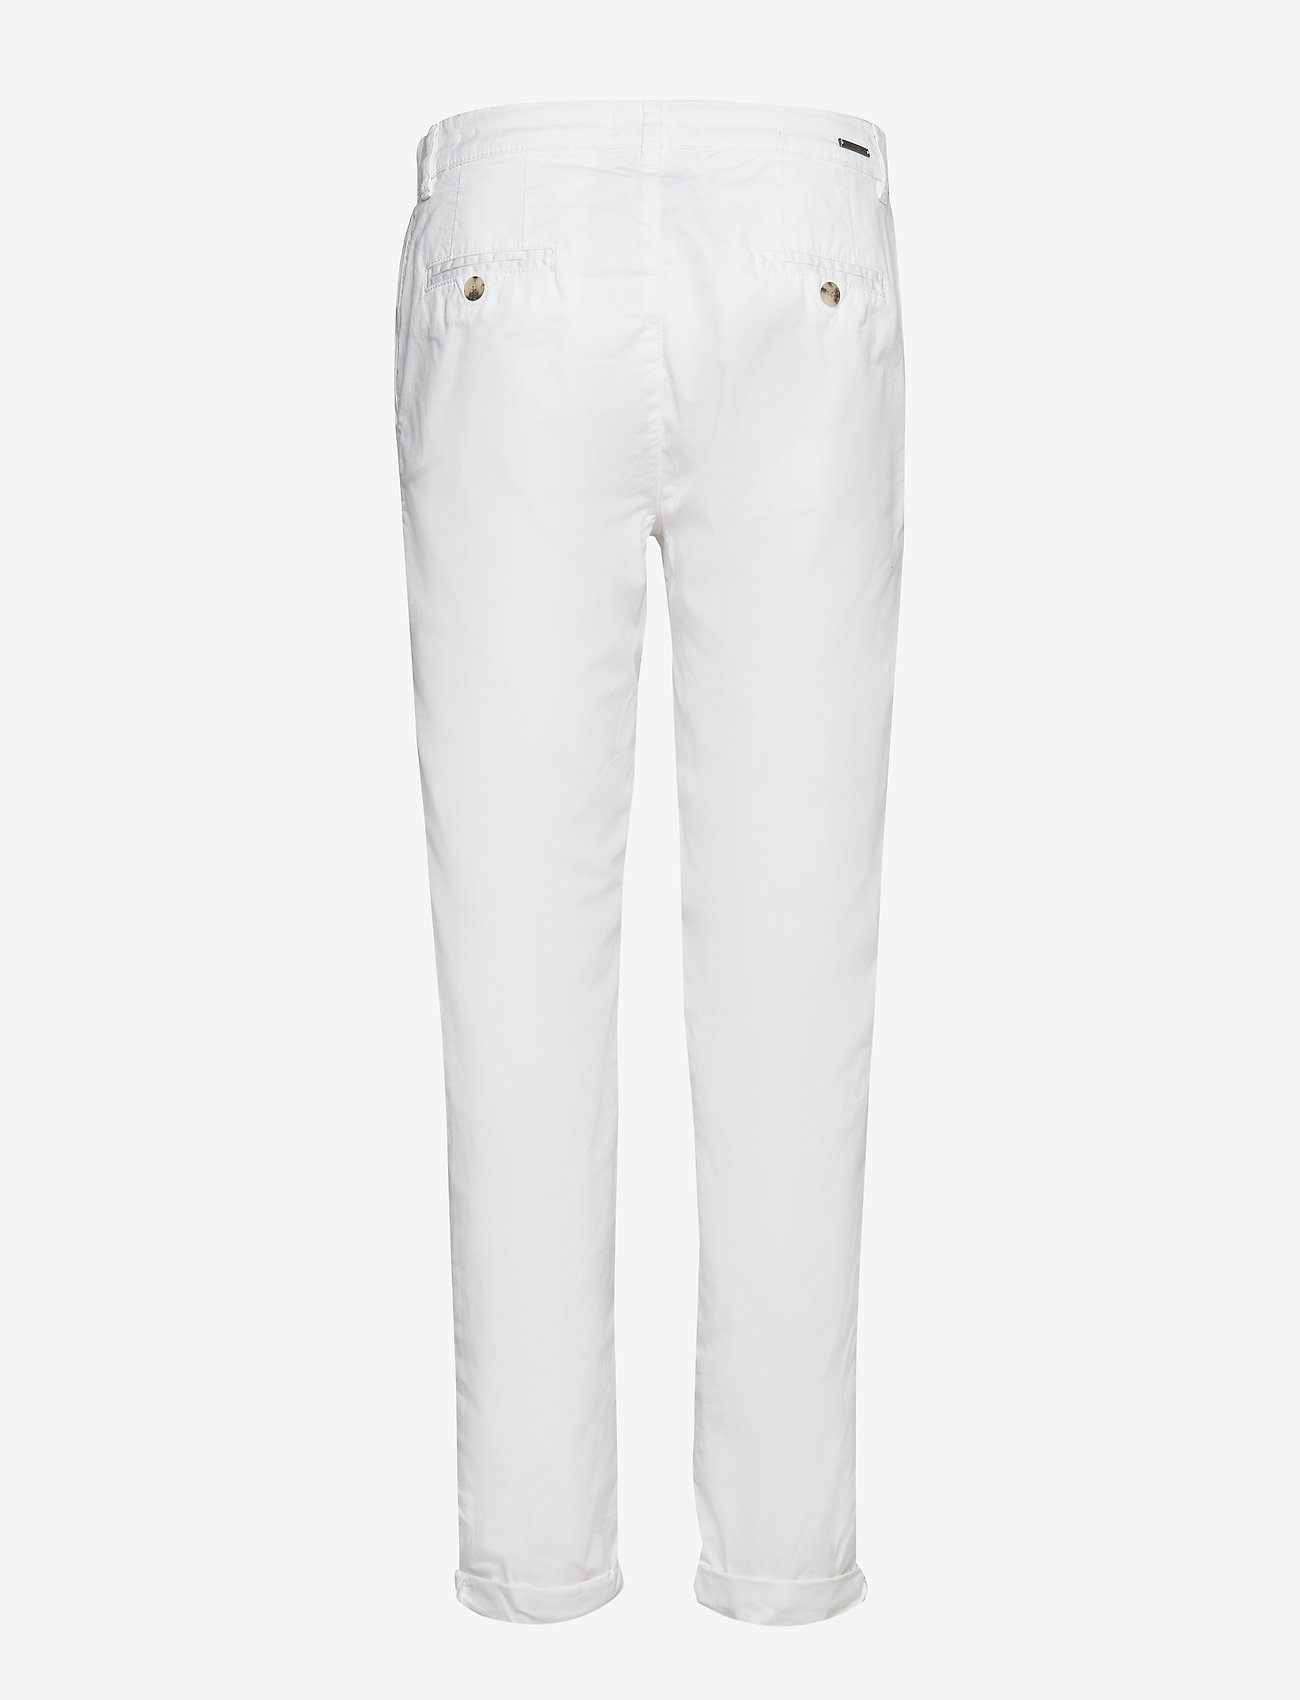 Esprit Casual - Pants woven - chinos - white - 1